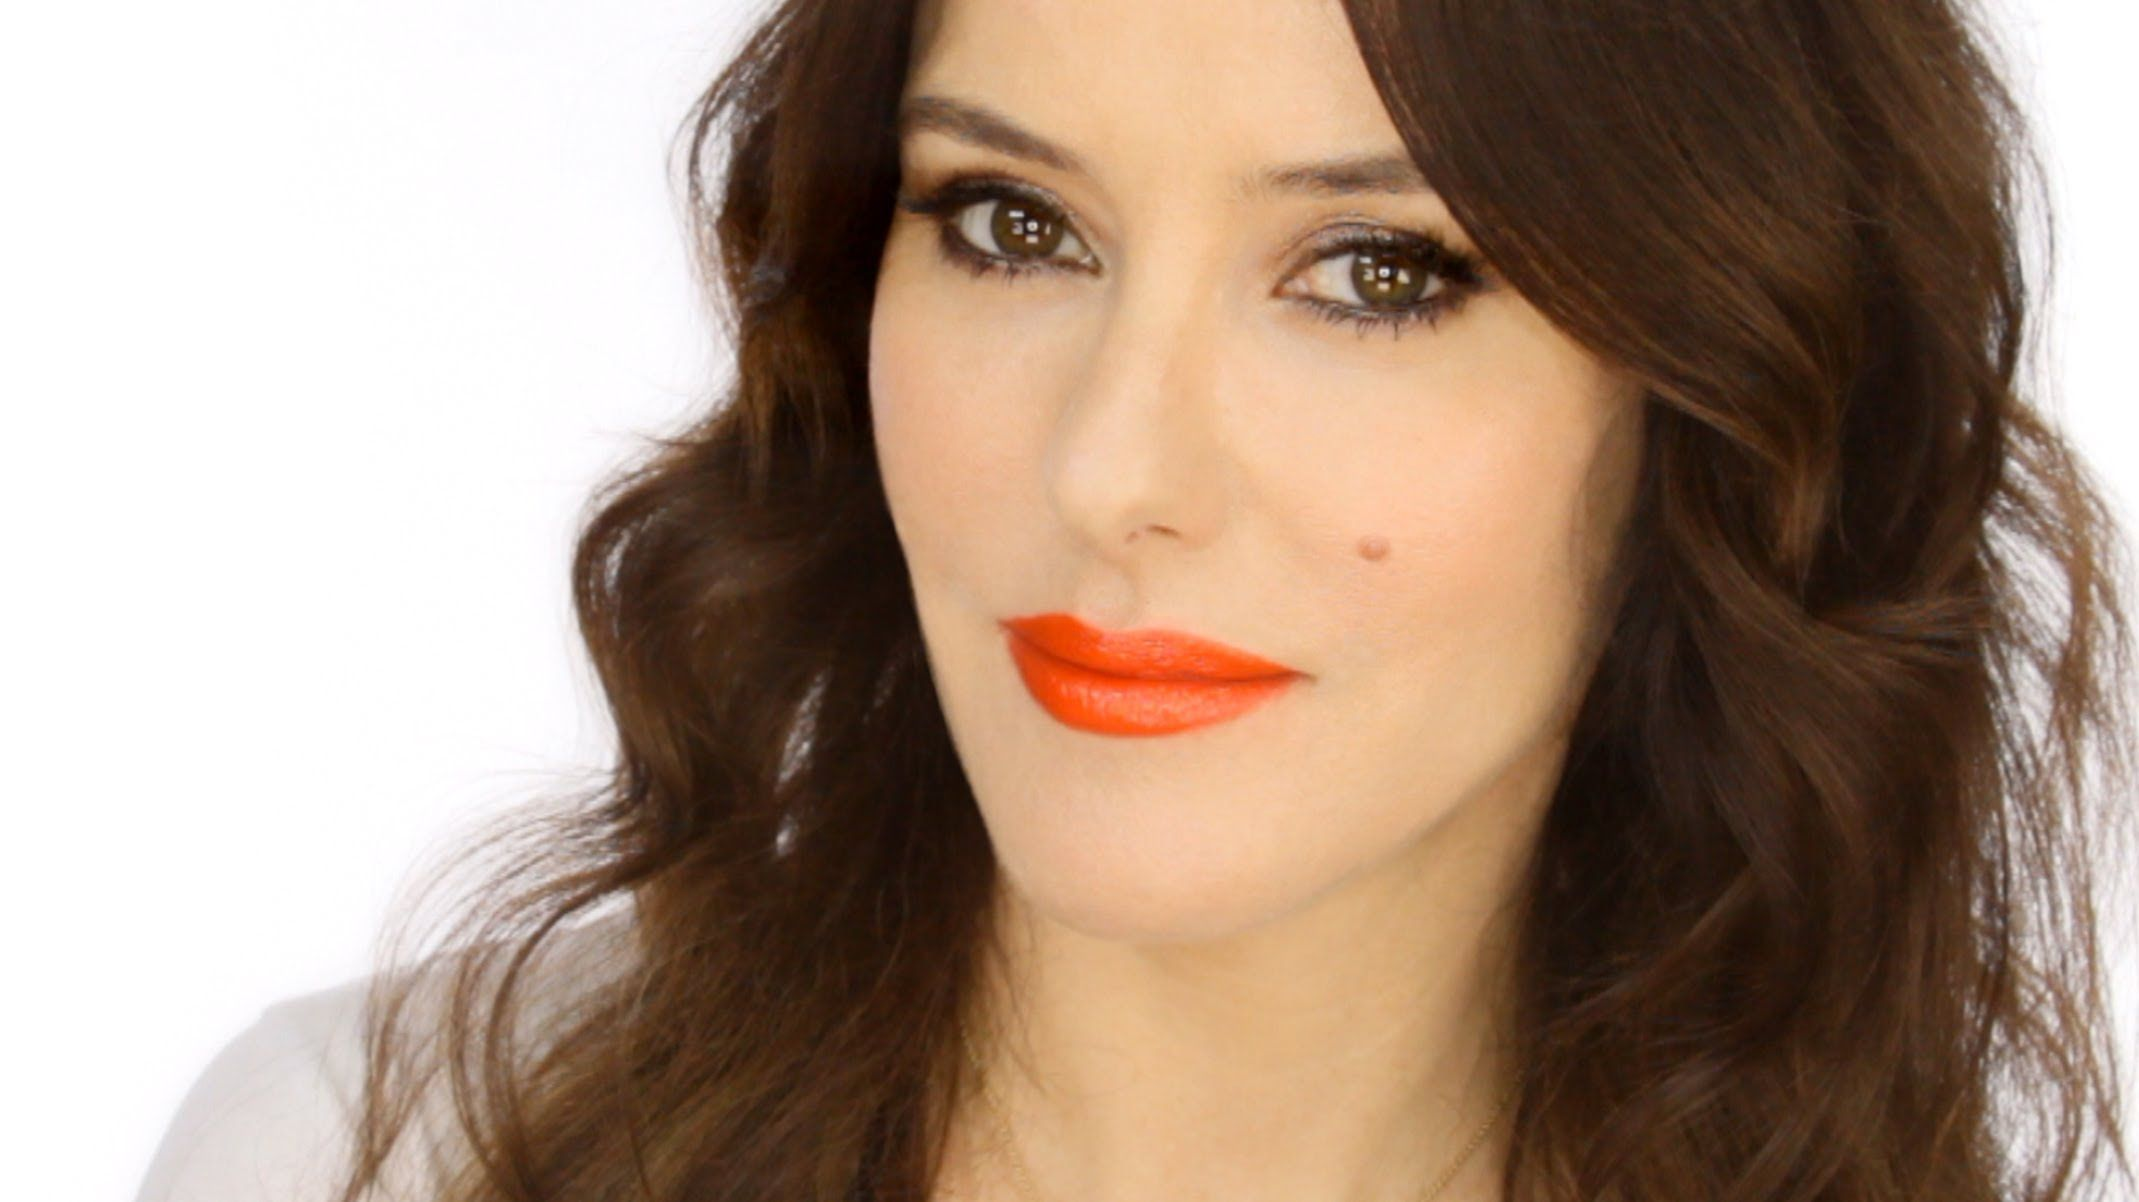 Keira Knightley Red Carpet Look  How To Wear An Orange Lip Http: